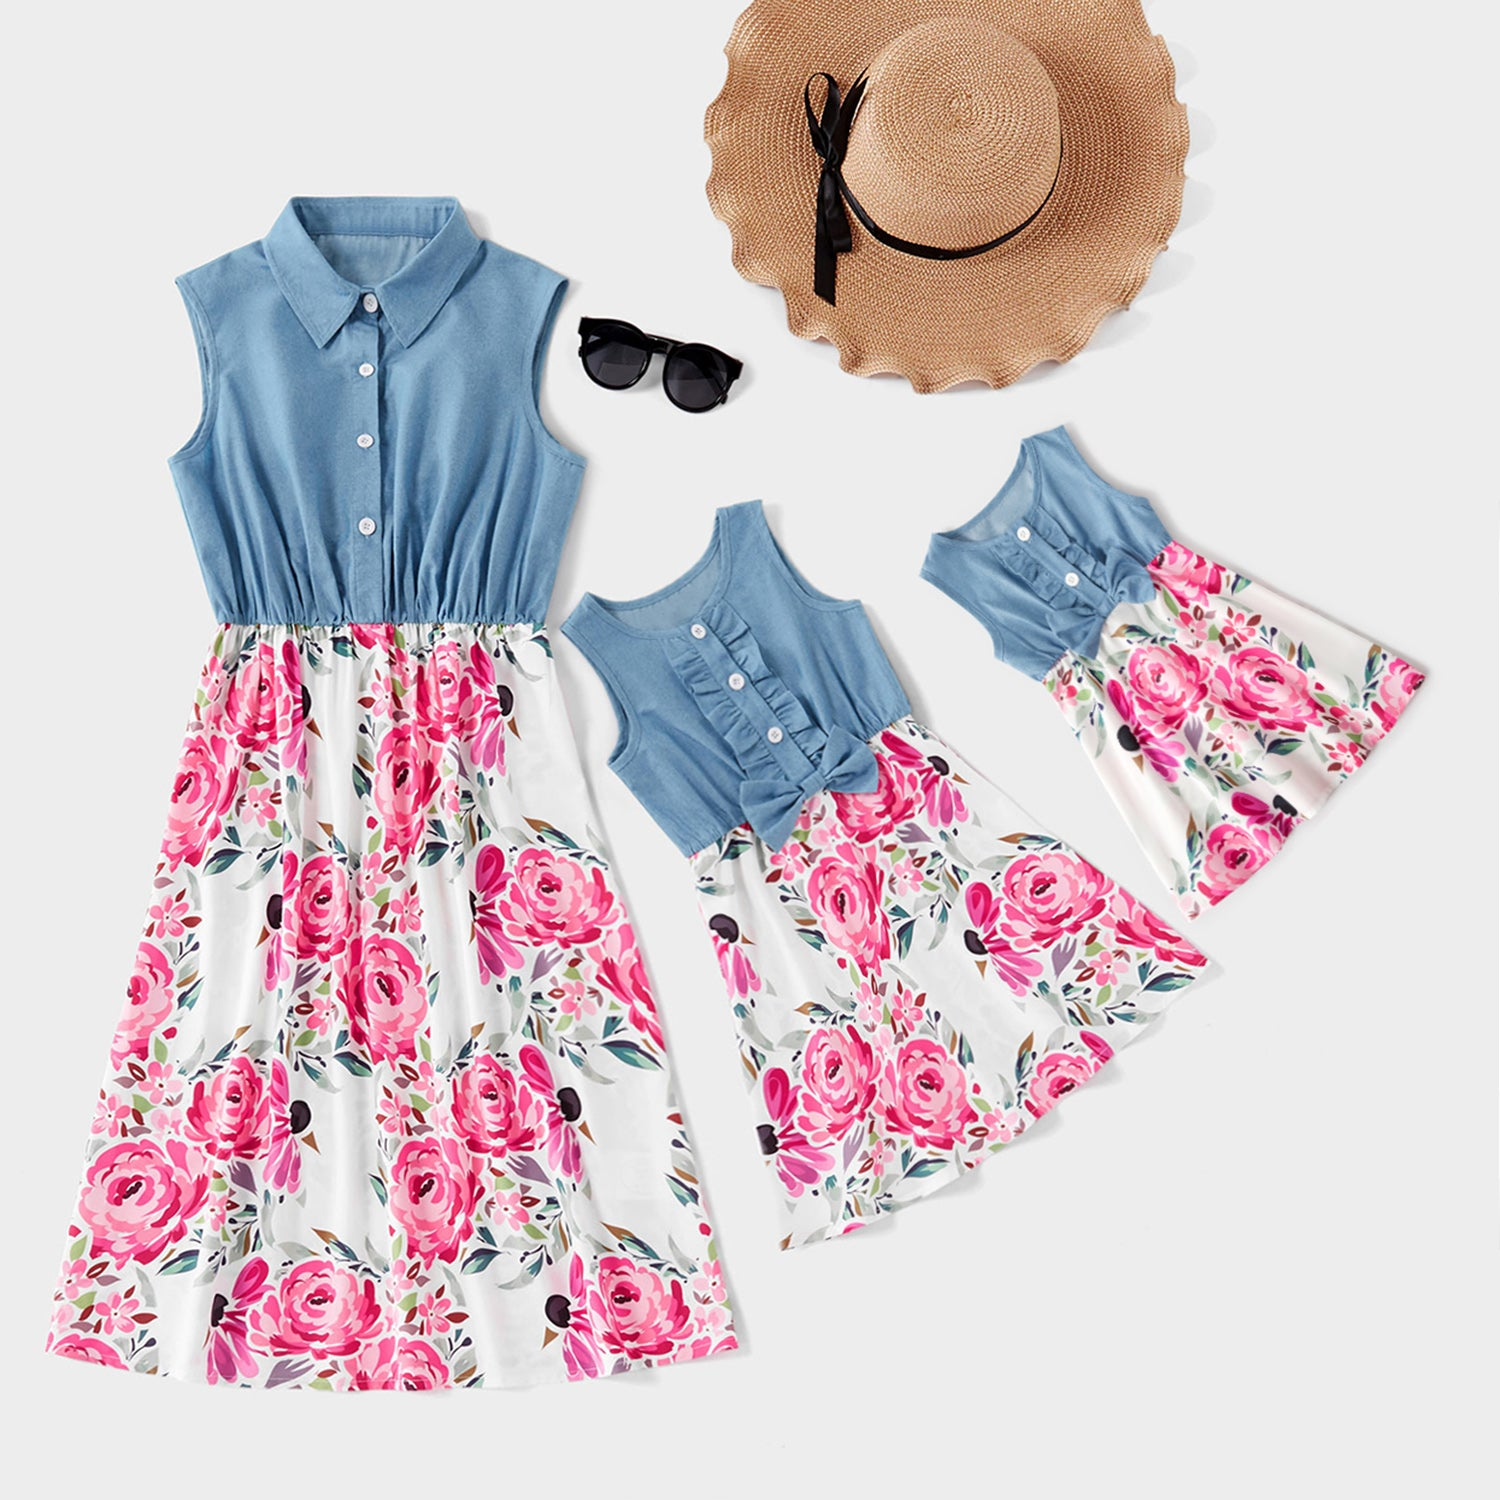 Denim Stitching Flower Print Matching Dresses